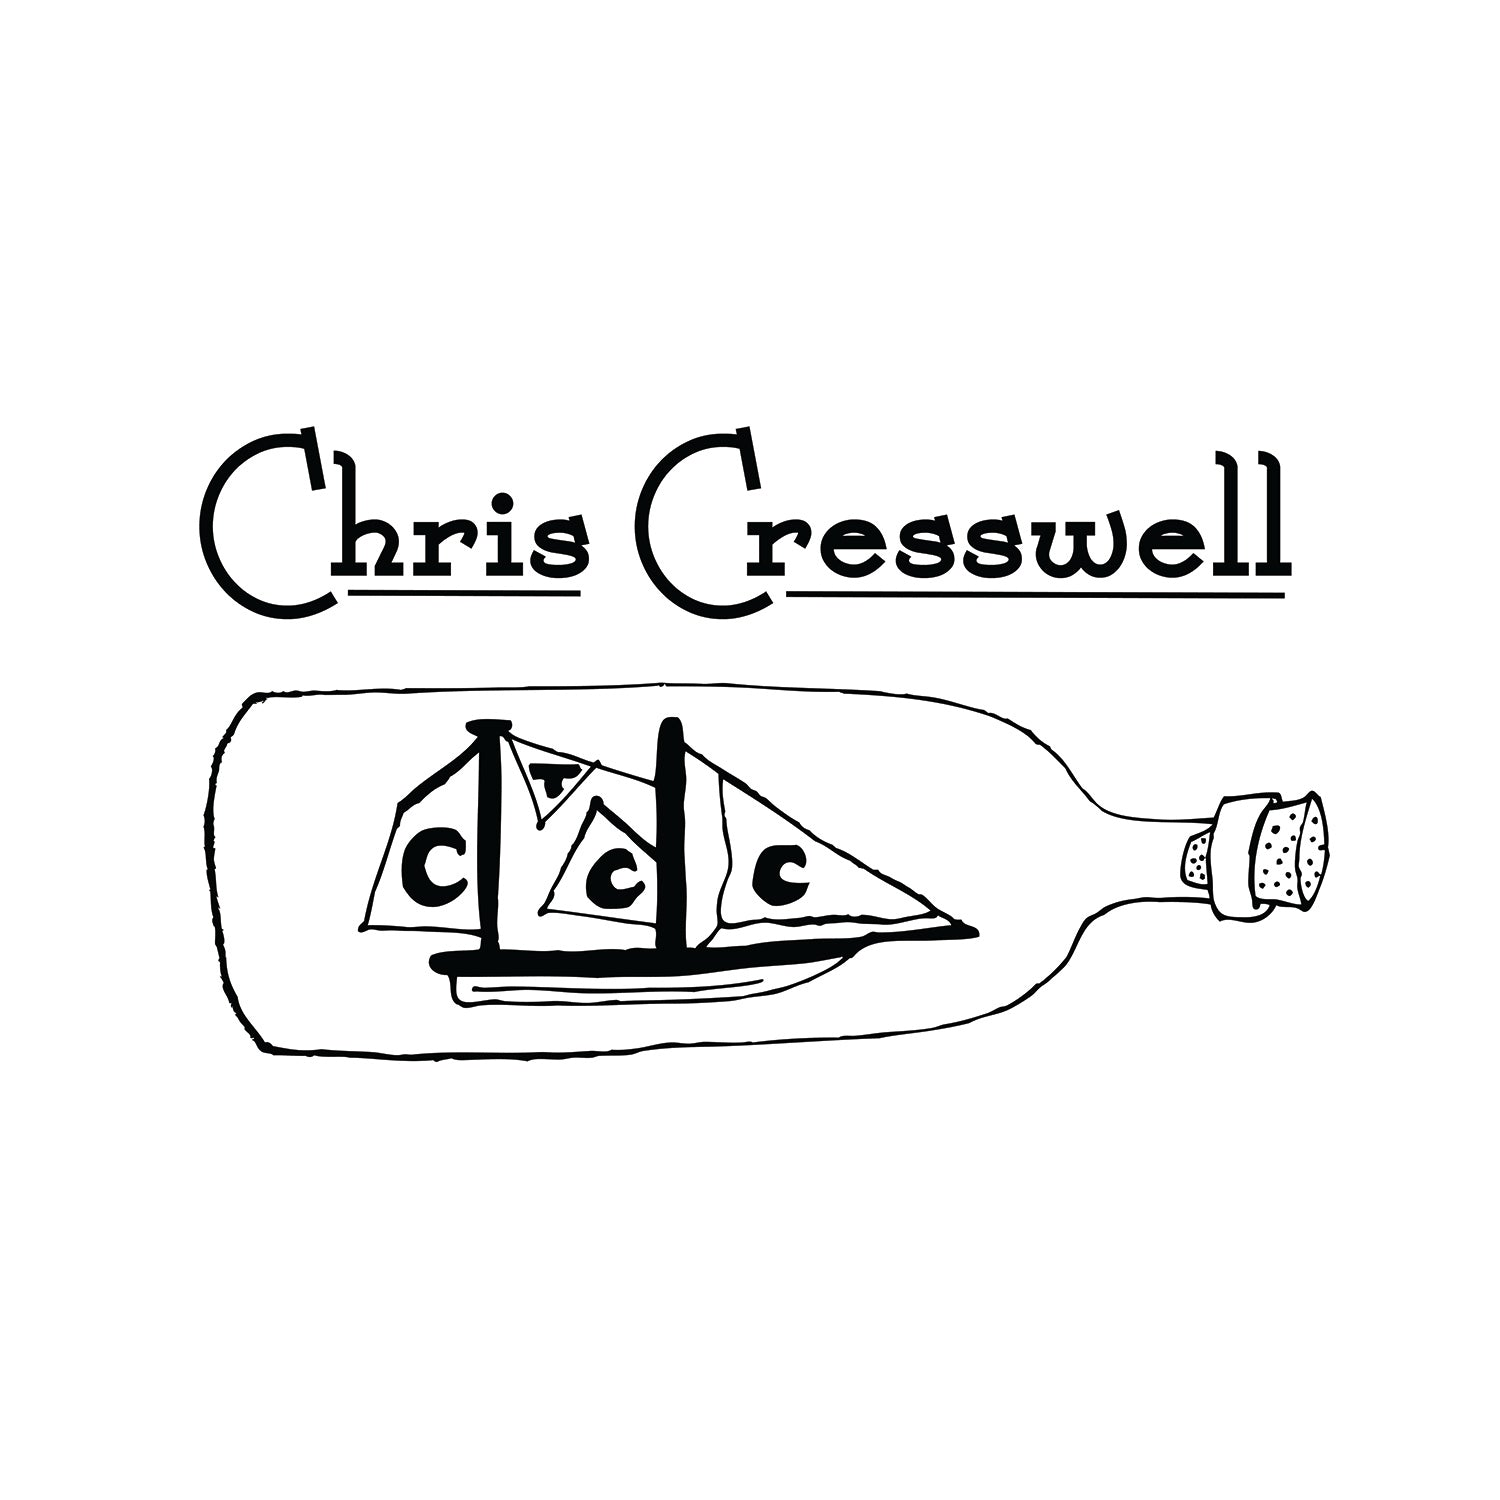 Chris Cresswell - One Week Record